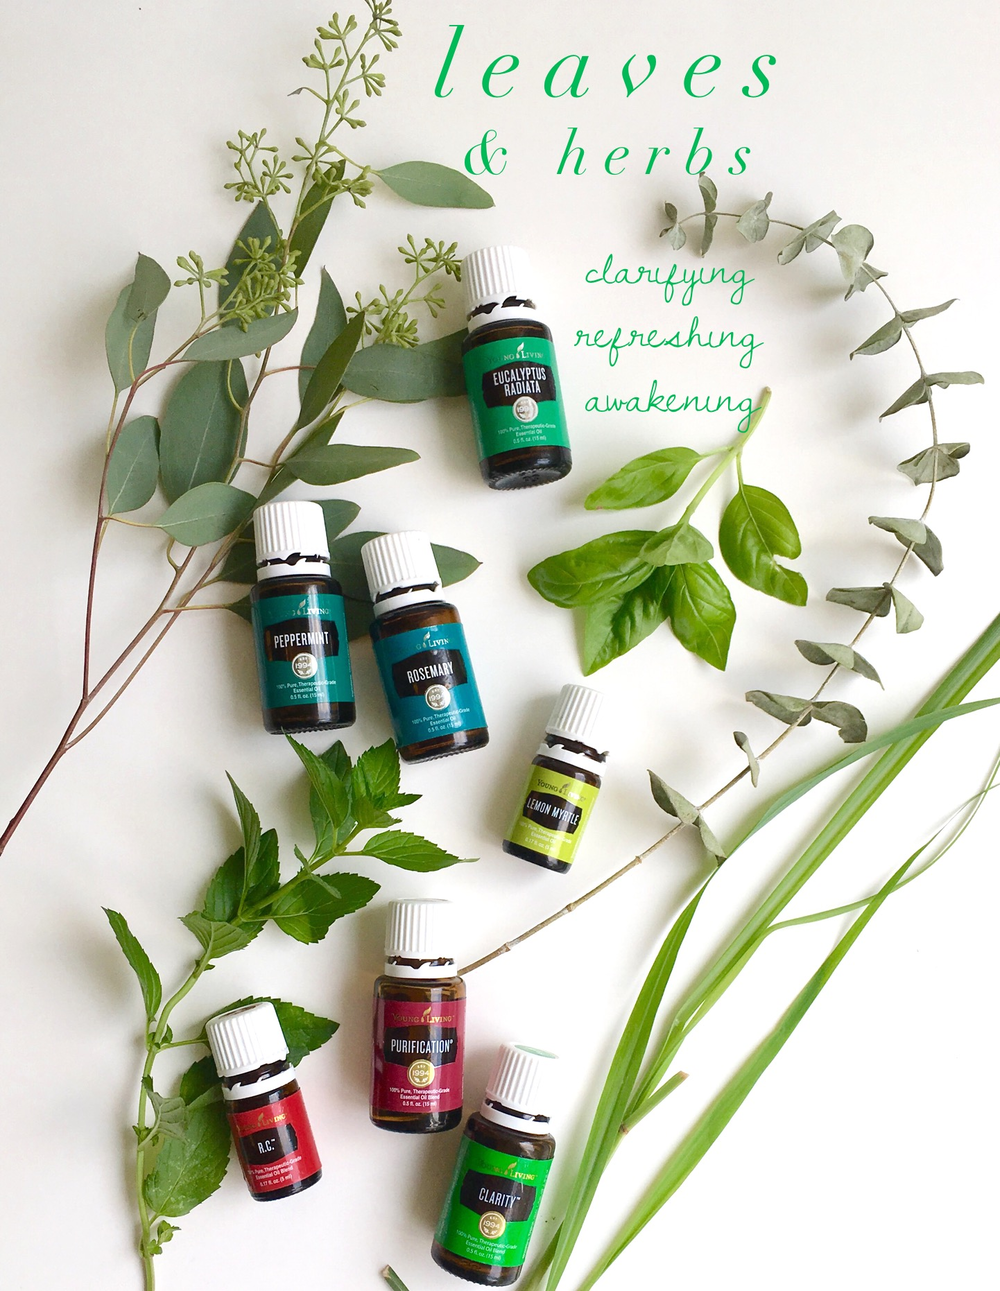 Peppermint, Rosemary, Eucalyptus, Lemon Myrtle are all wonderful herb-oils. Purification, R.C. and Clarity are blends.